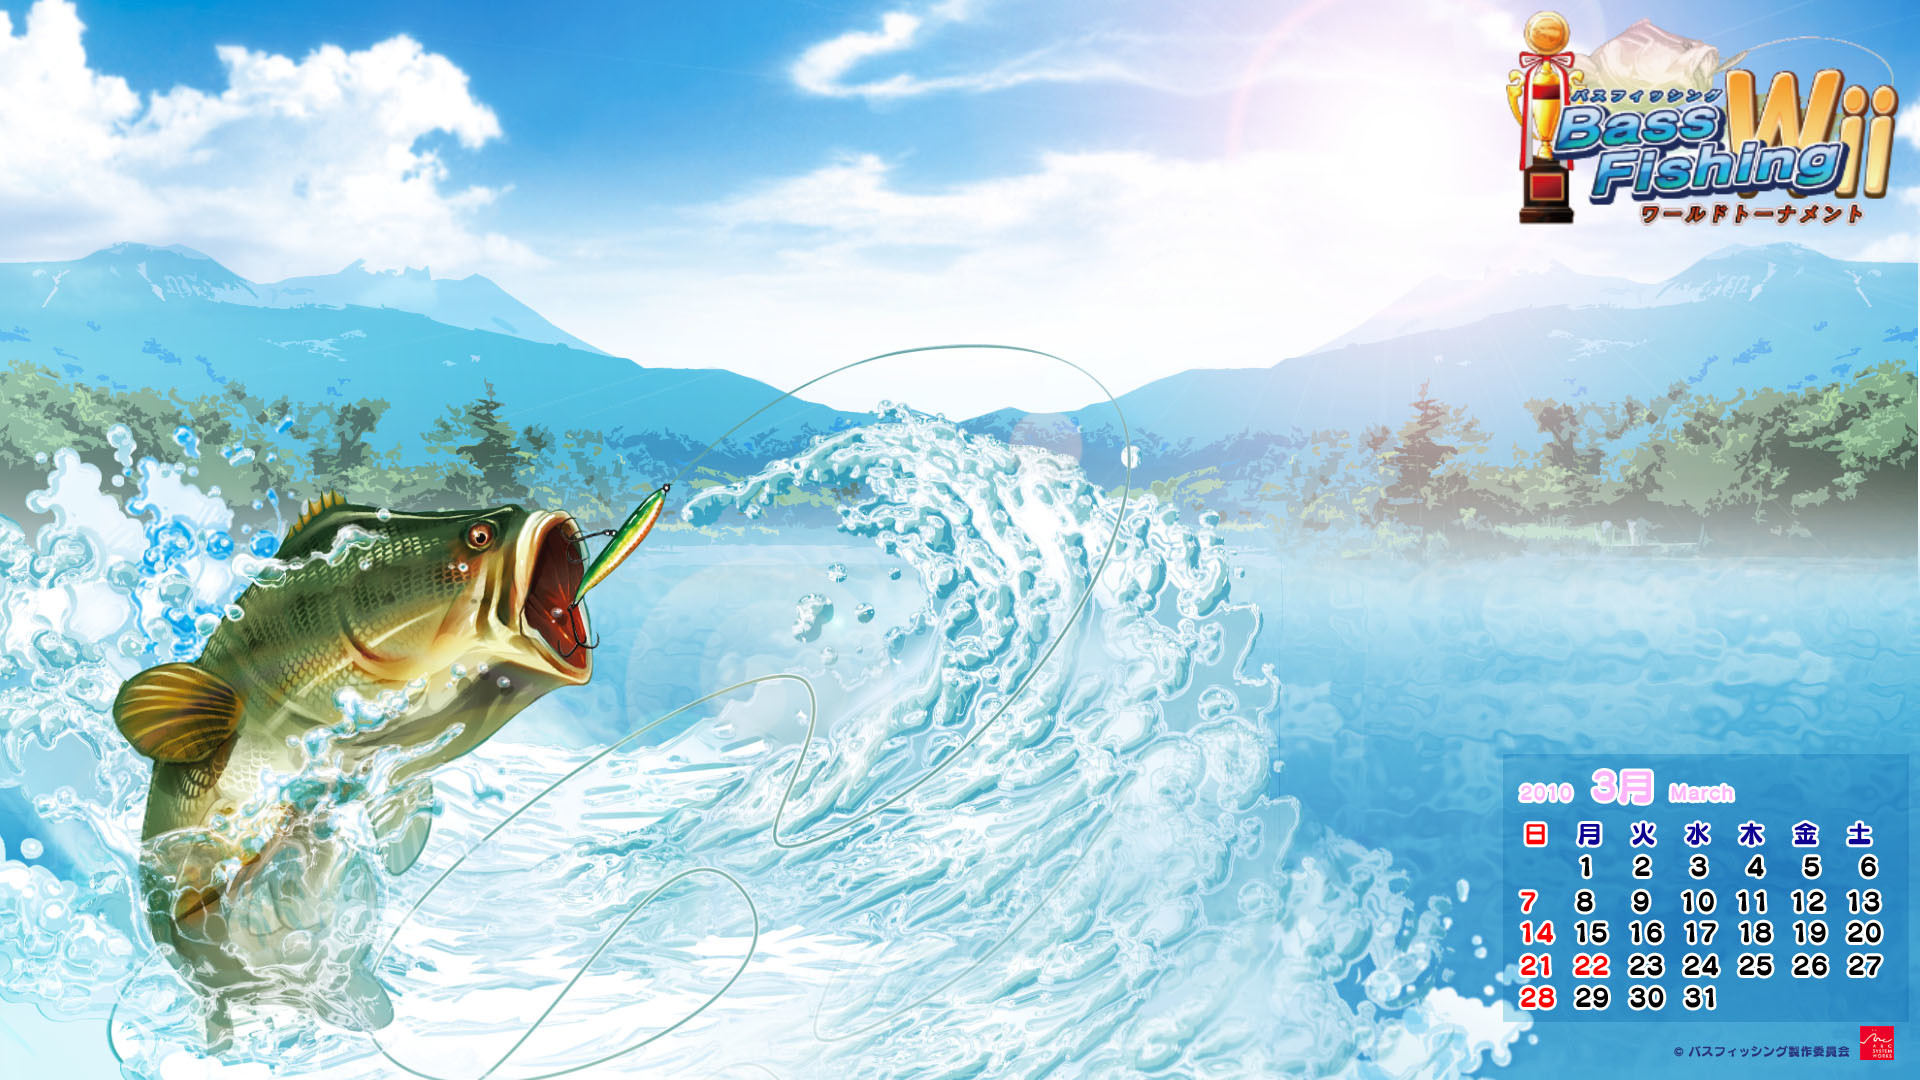 1920x1080 Bass Fishing Wallpaper HD 1920 X 1080 Learn how to catch any kind of fish  with